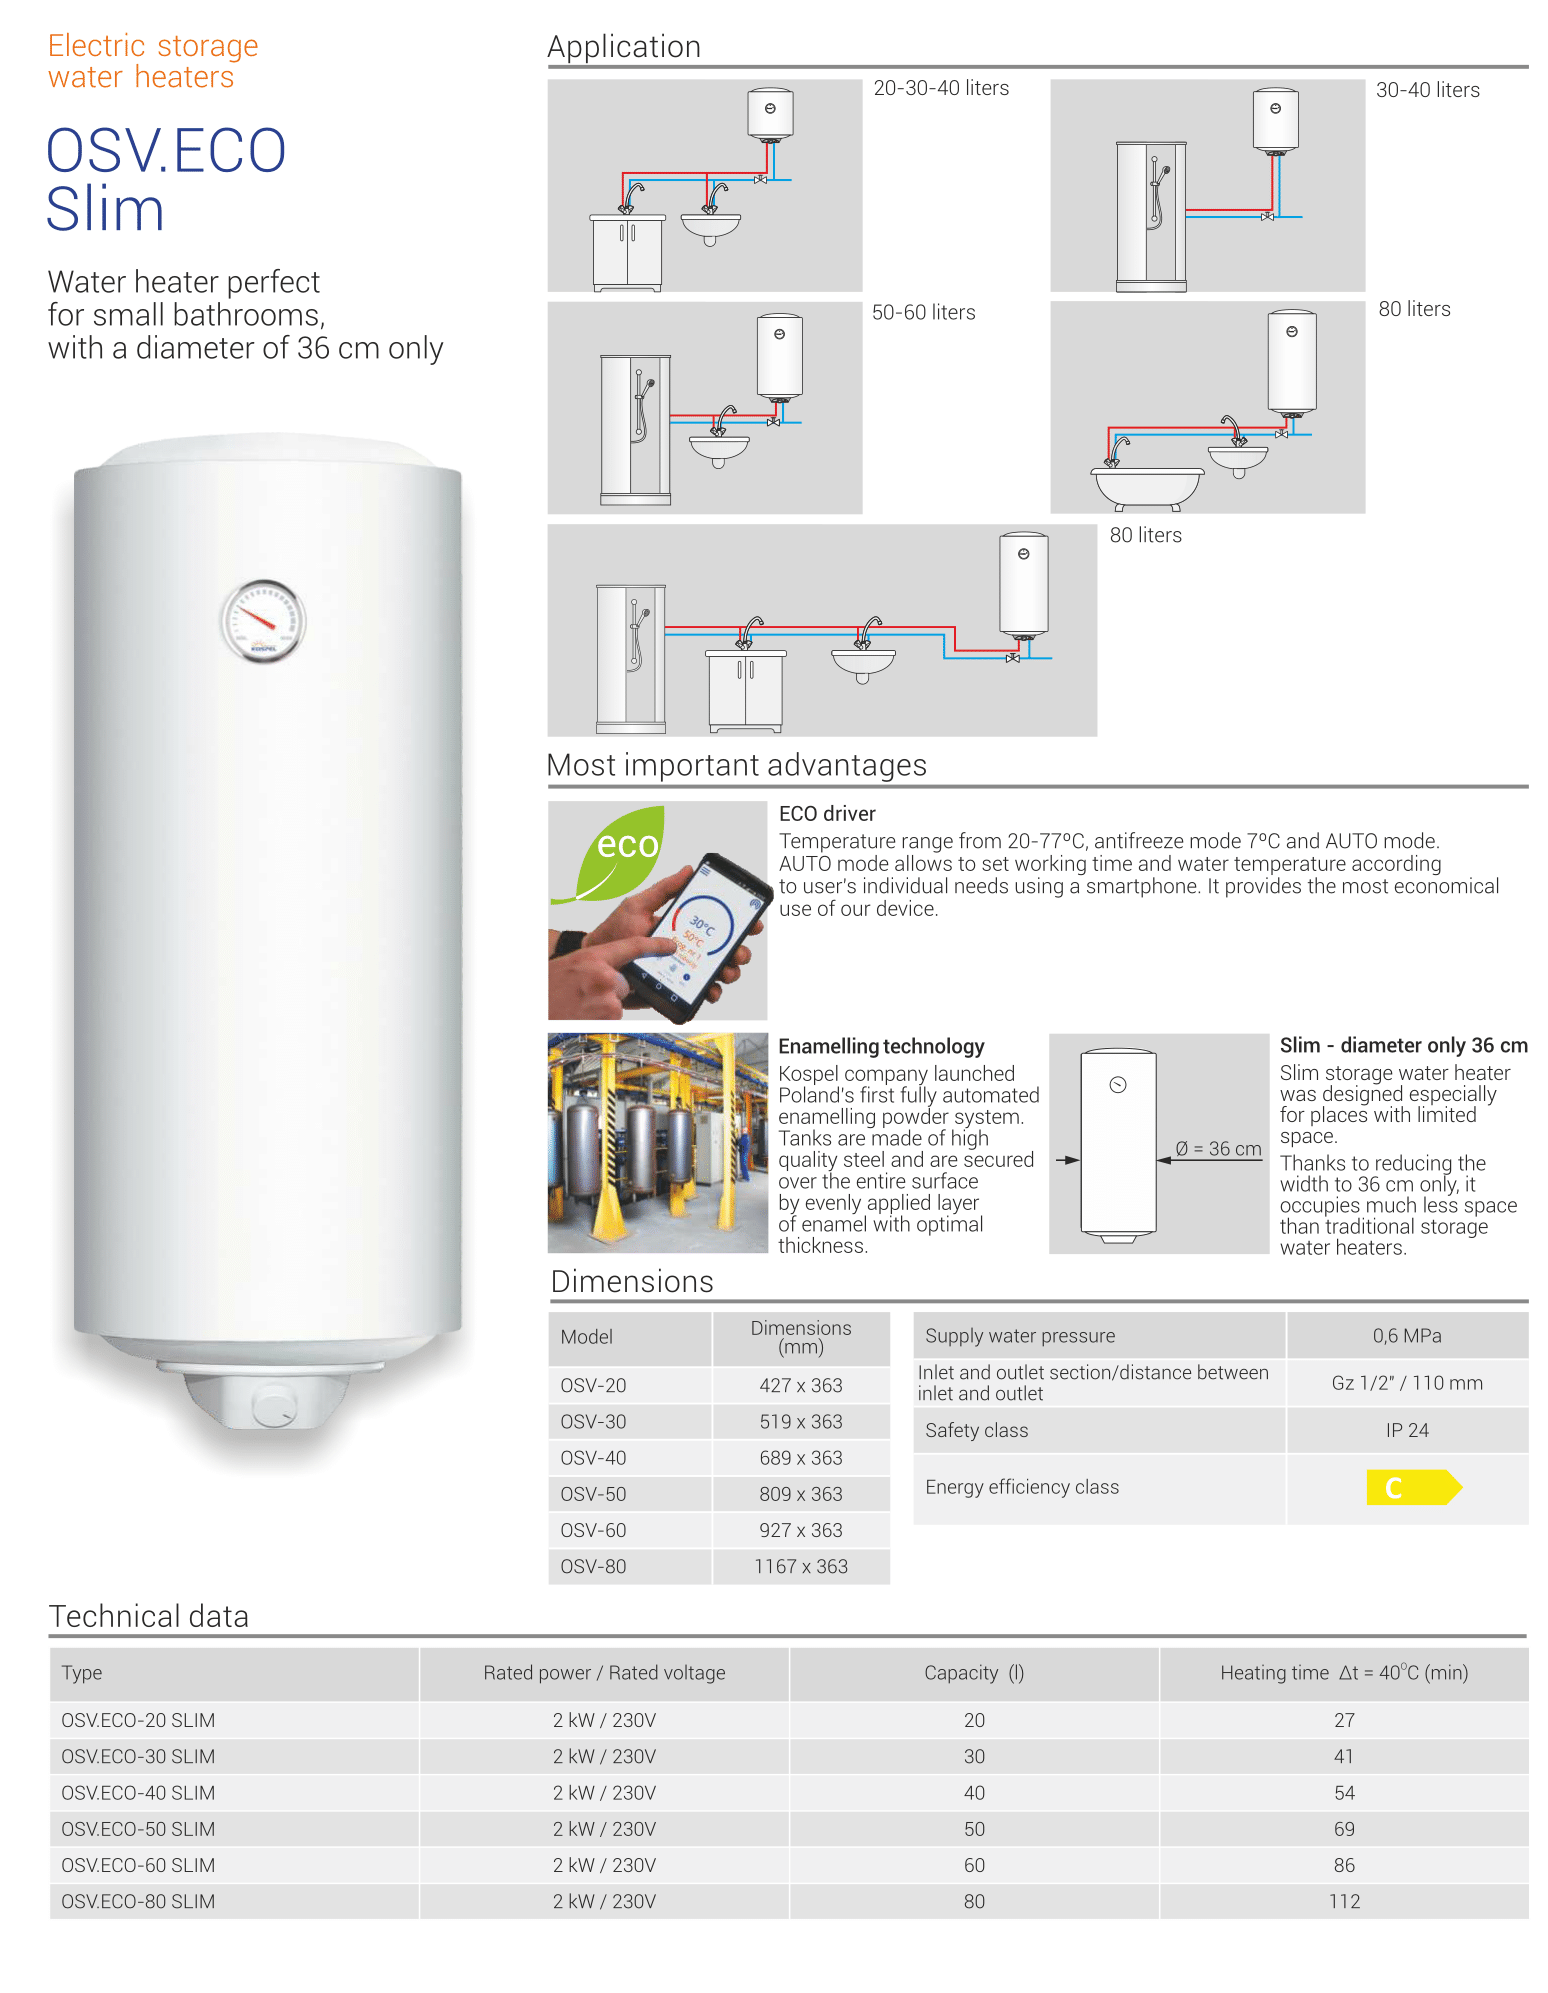 OSV Eco Slim Water Heater